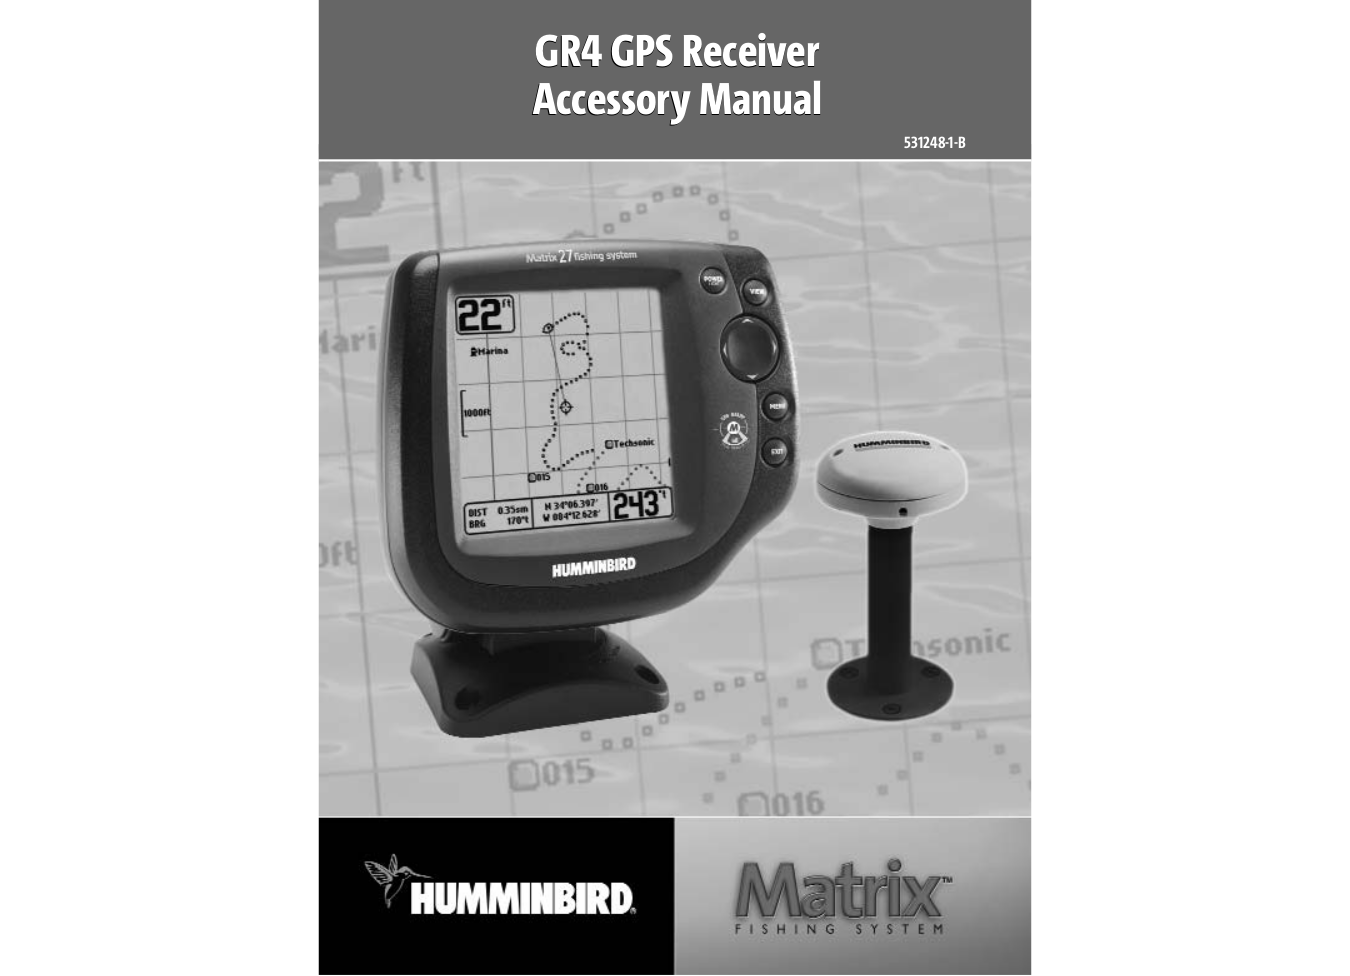 Download Free Pdf For Humminbird Matrix 37 Gps Manual You Can Also The Instructions As A Document Hummingbird Click To Preview